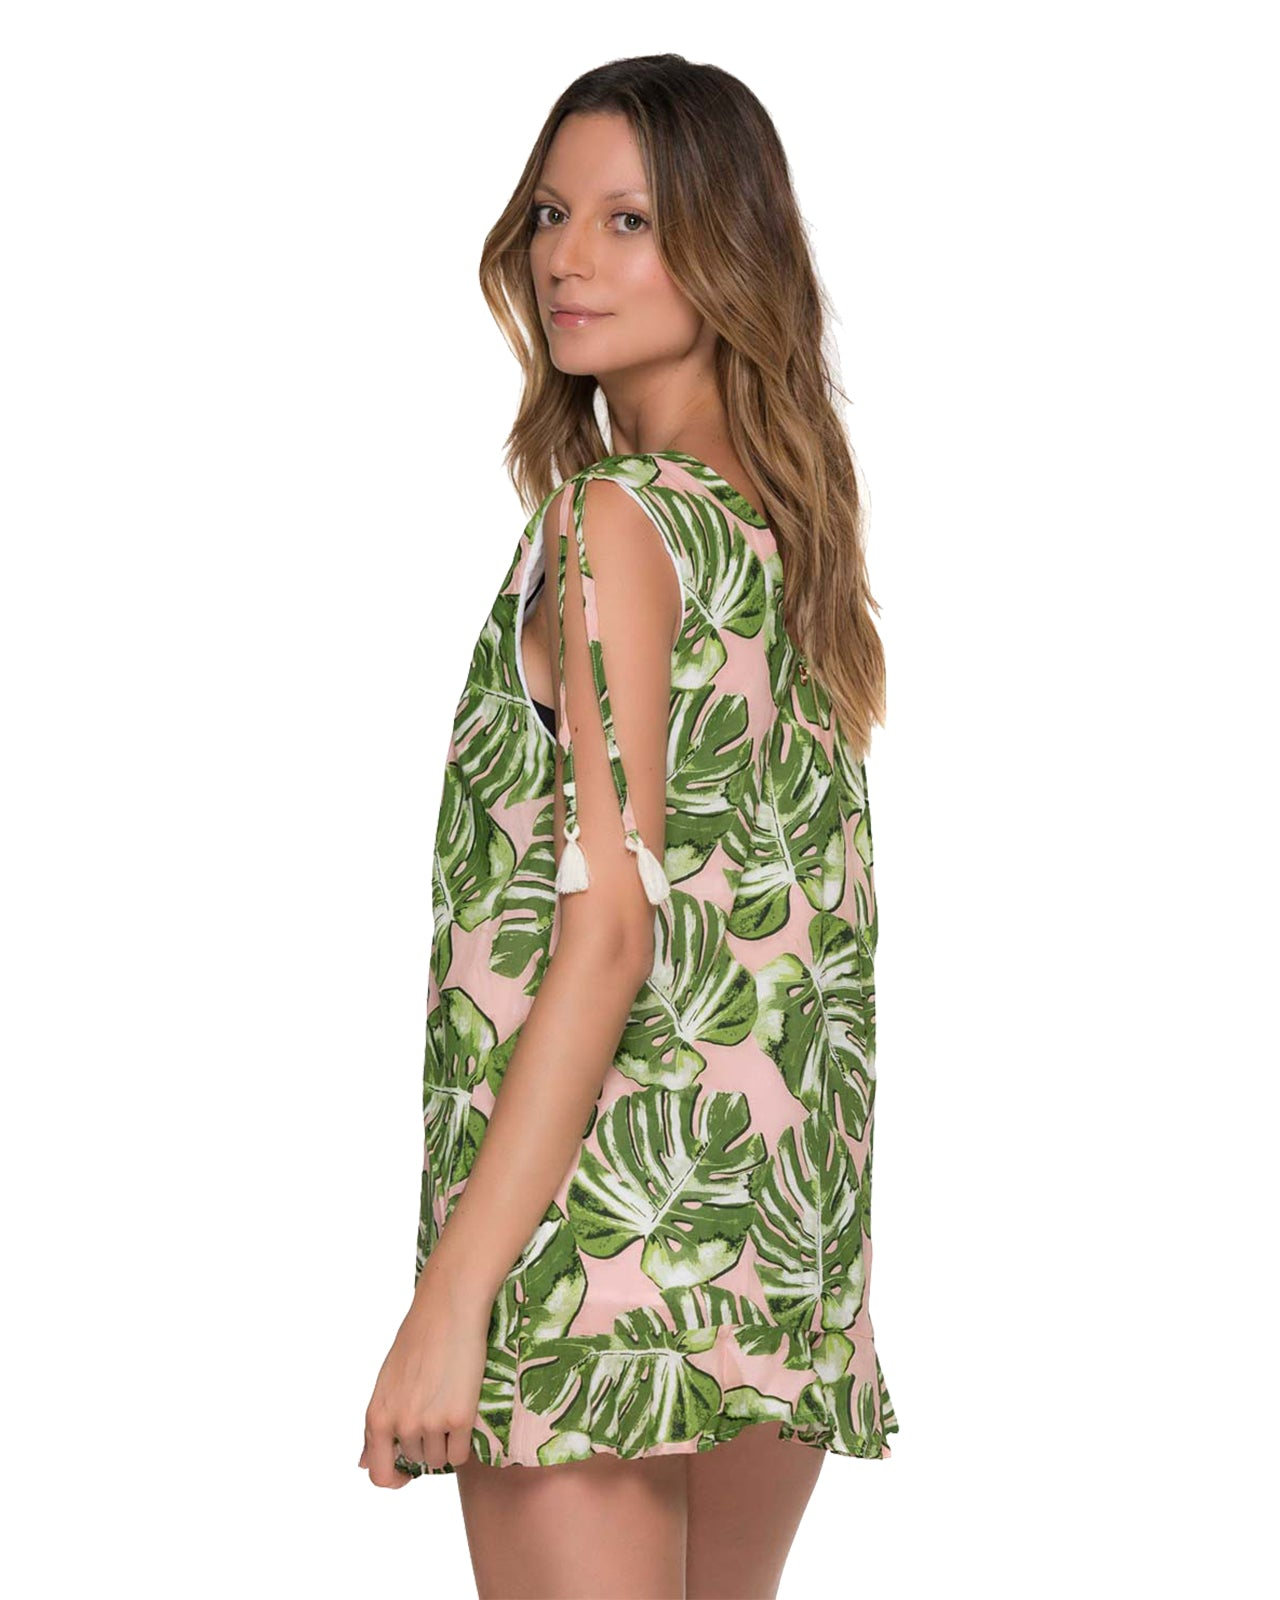 MONSTERA DELIGHT SUMMER DRESS